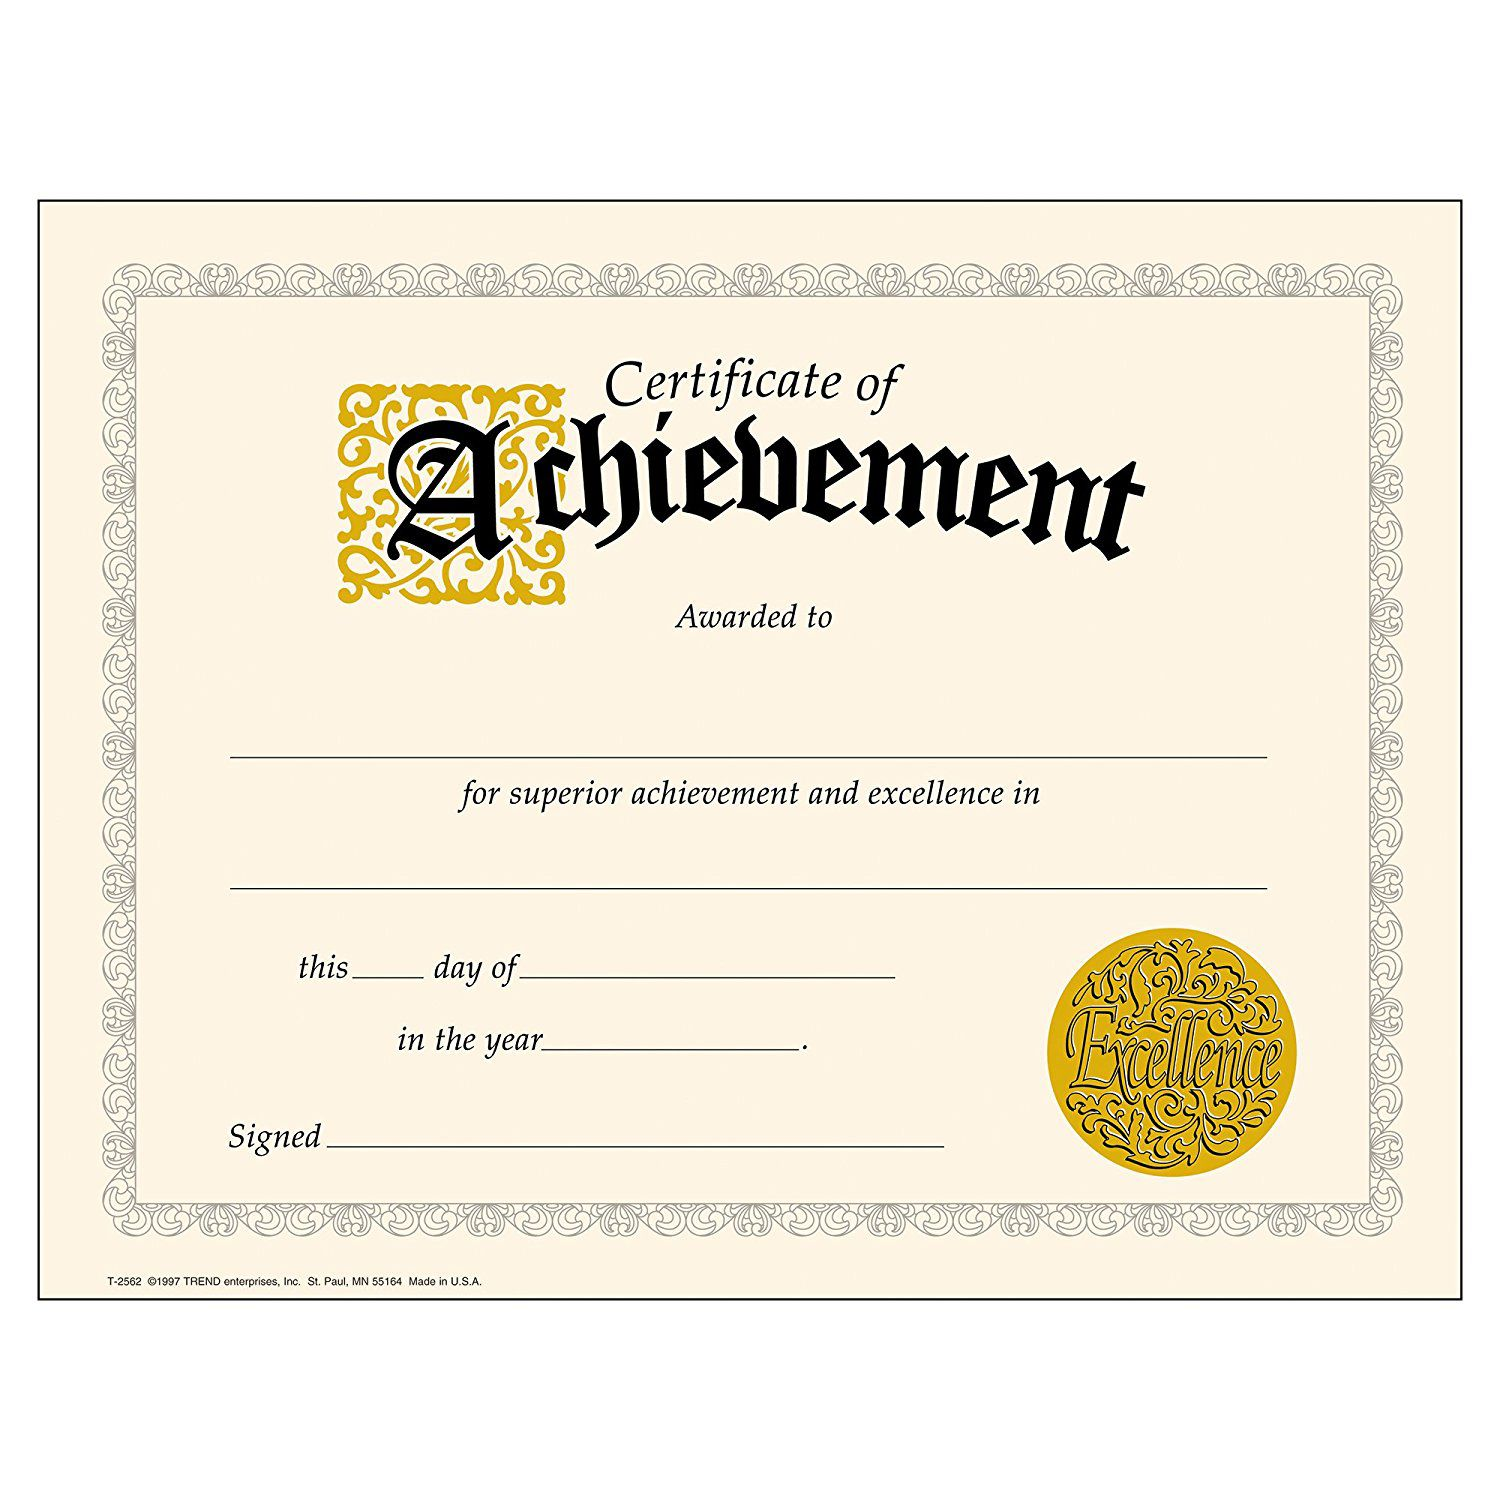 010 Awesome Certificate Of Achievement Template Free High Resolution  Award Download WordFull